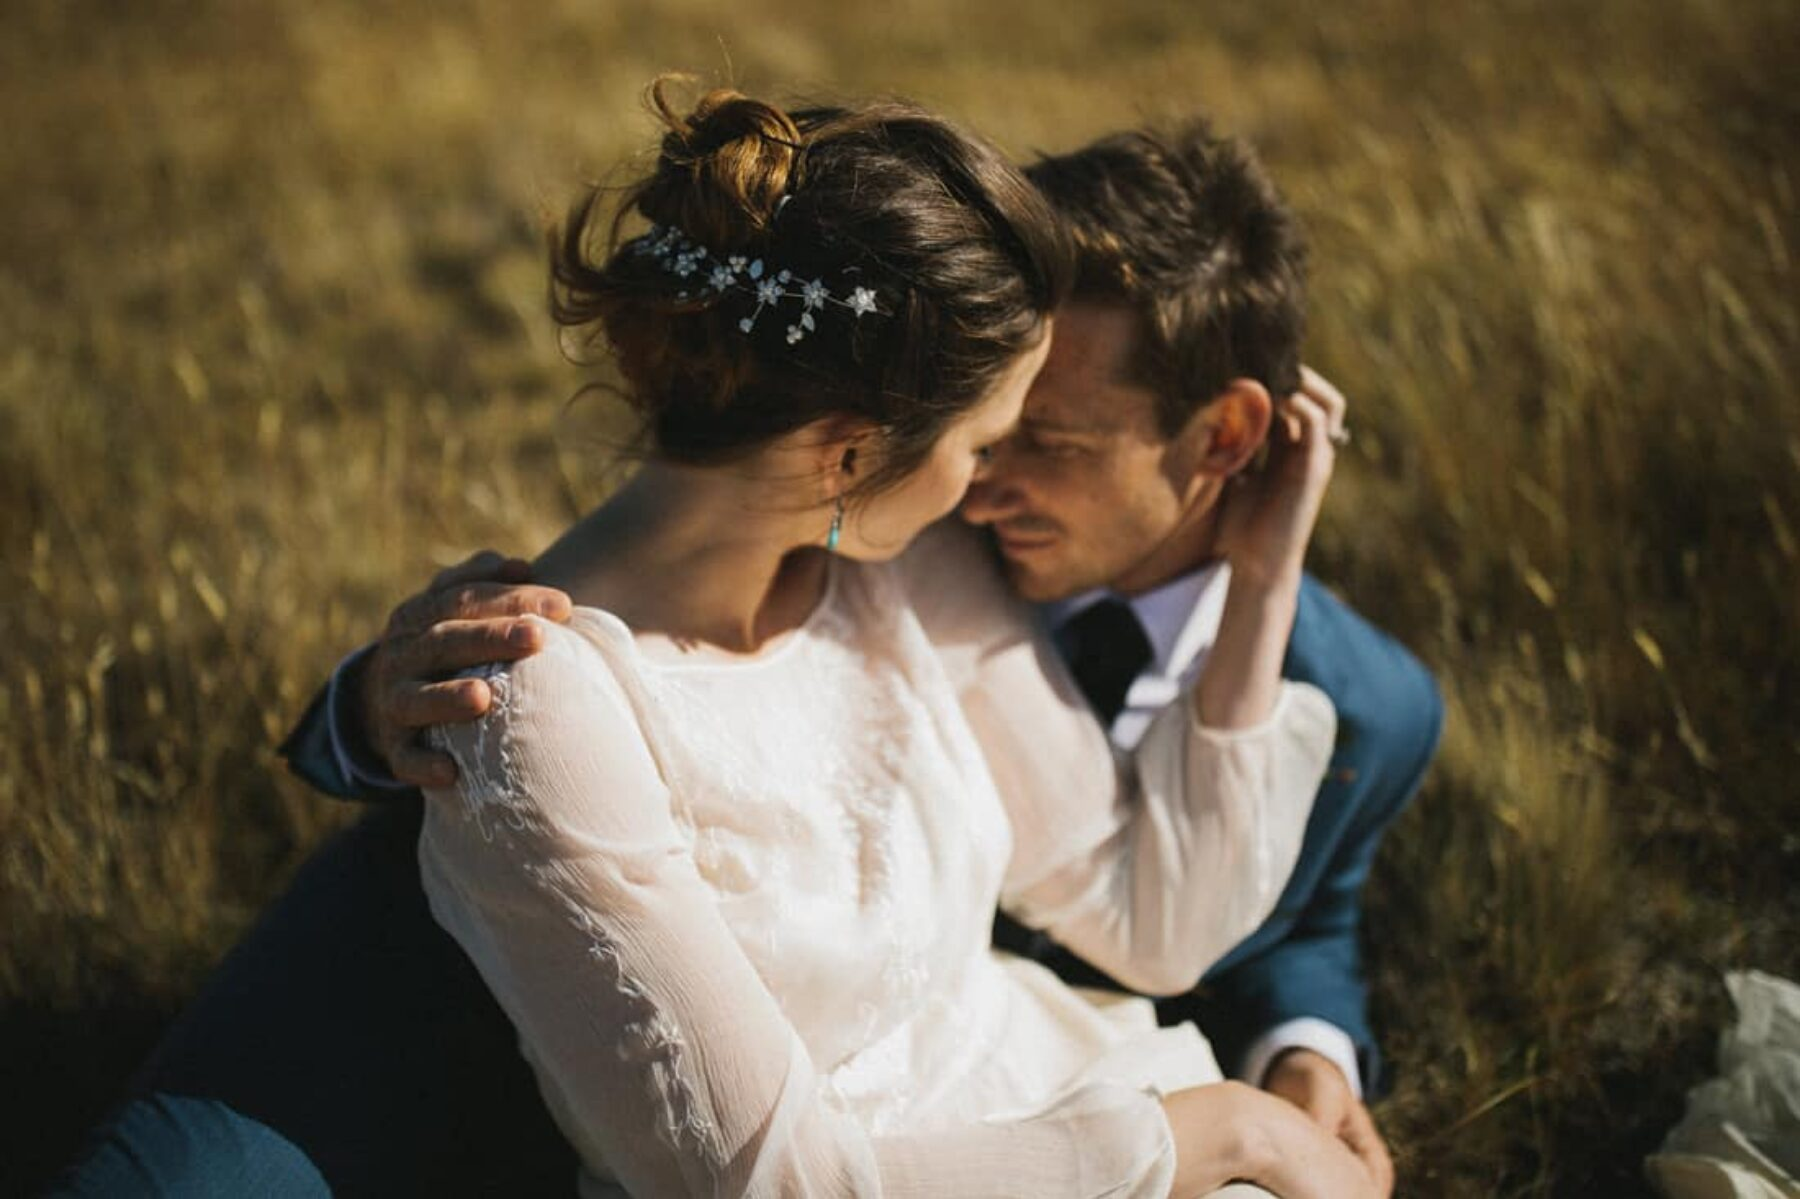 Autumn wedding in the wilderness of New Zealand's South Island